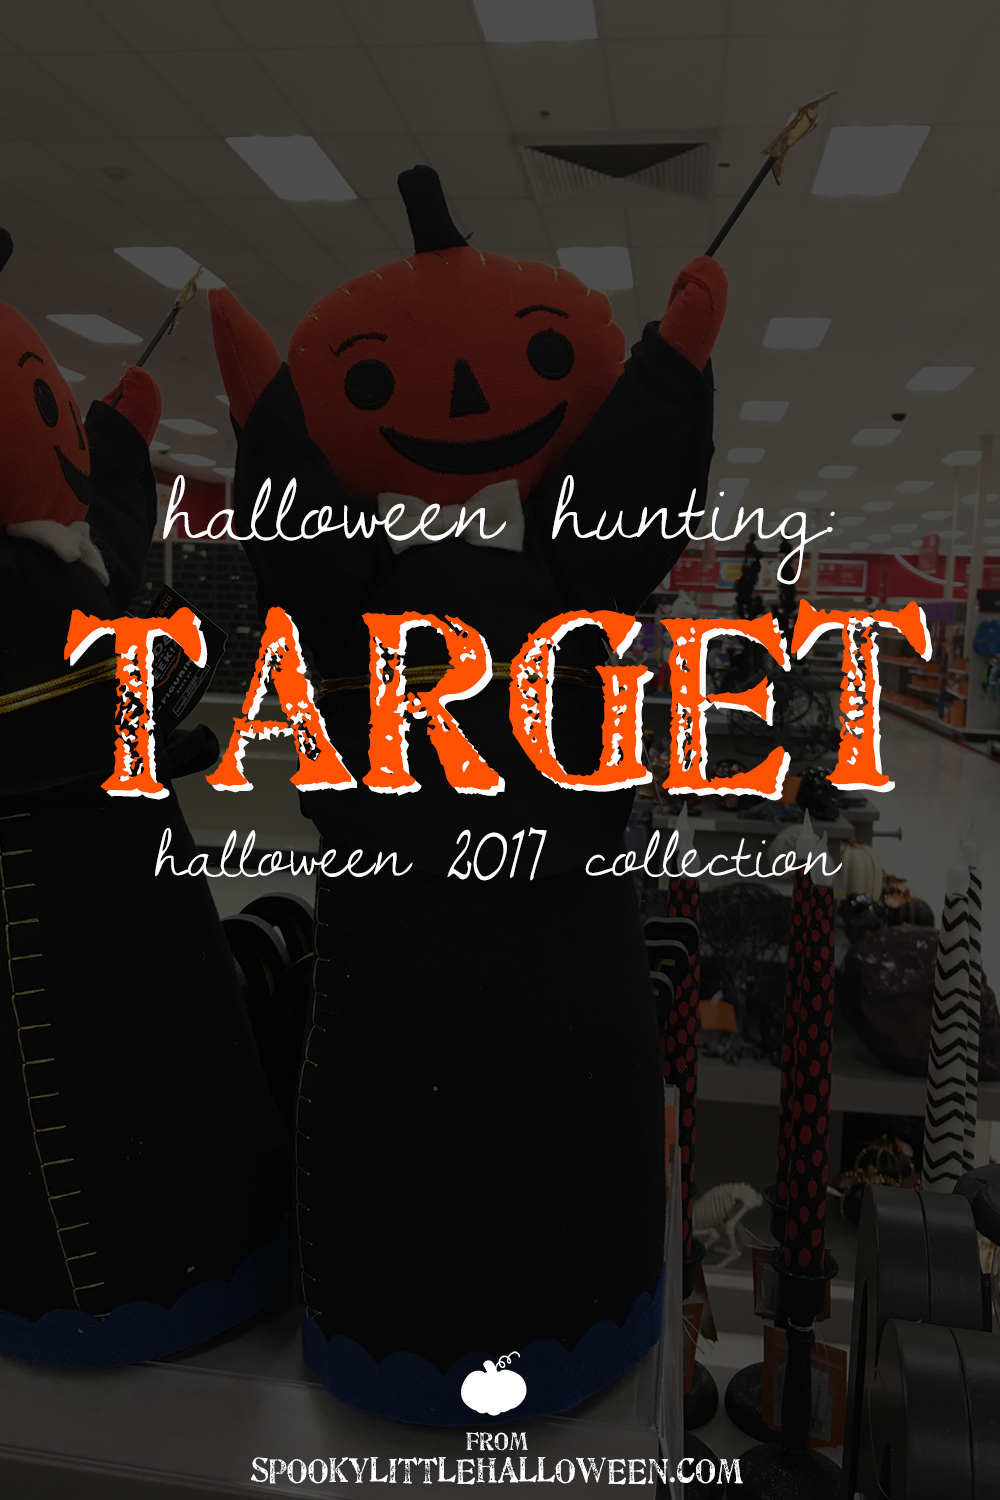 Halloween Hunting Target Halloween 2017 Collection Spooky Little Halloween